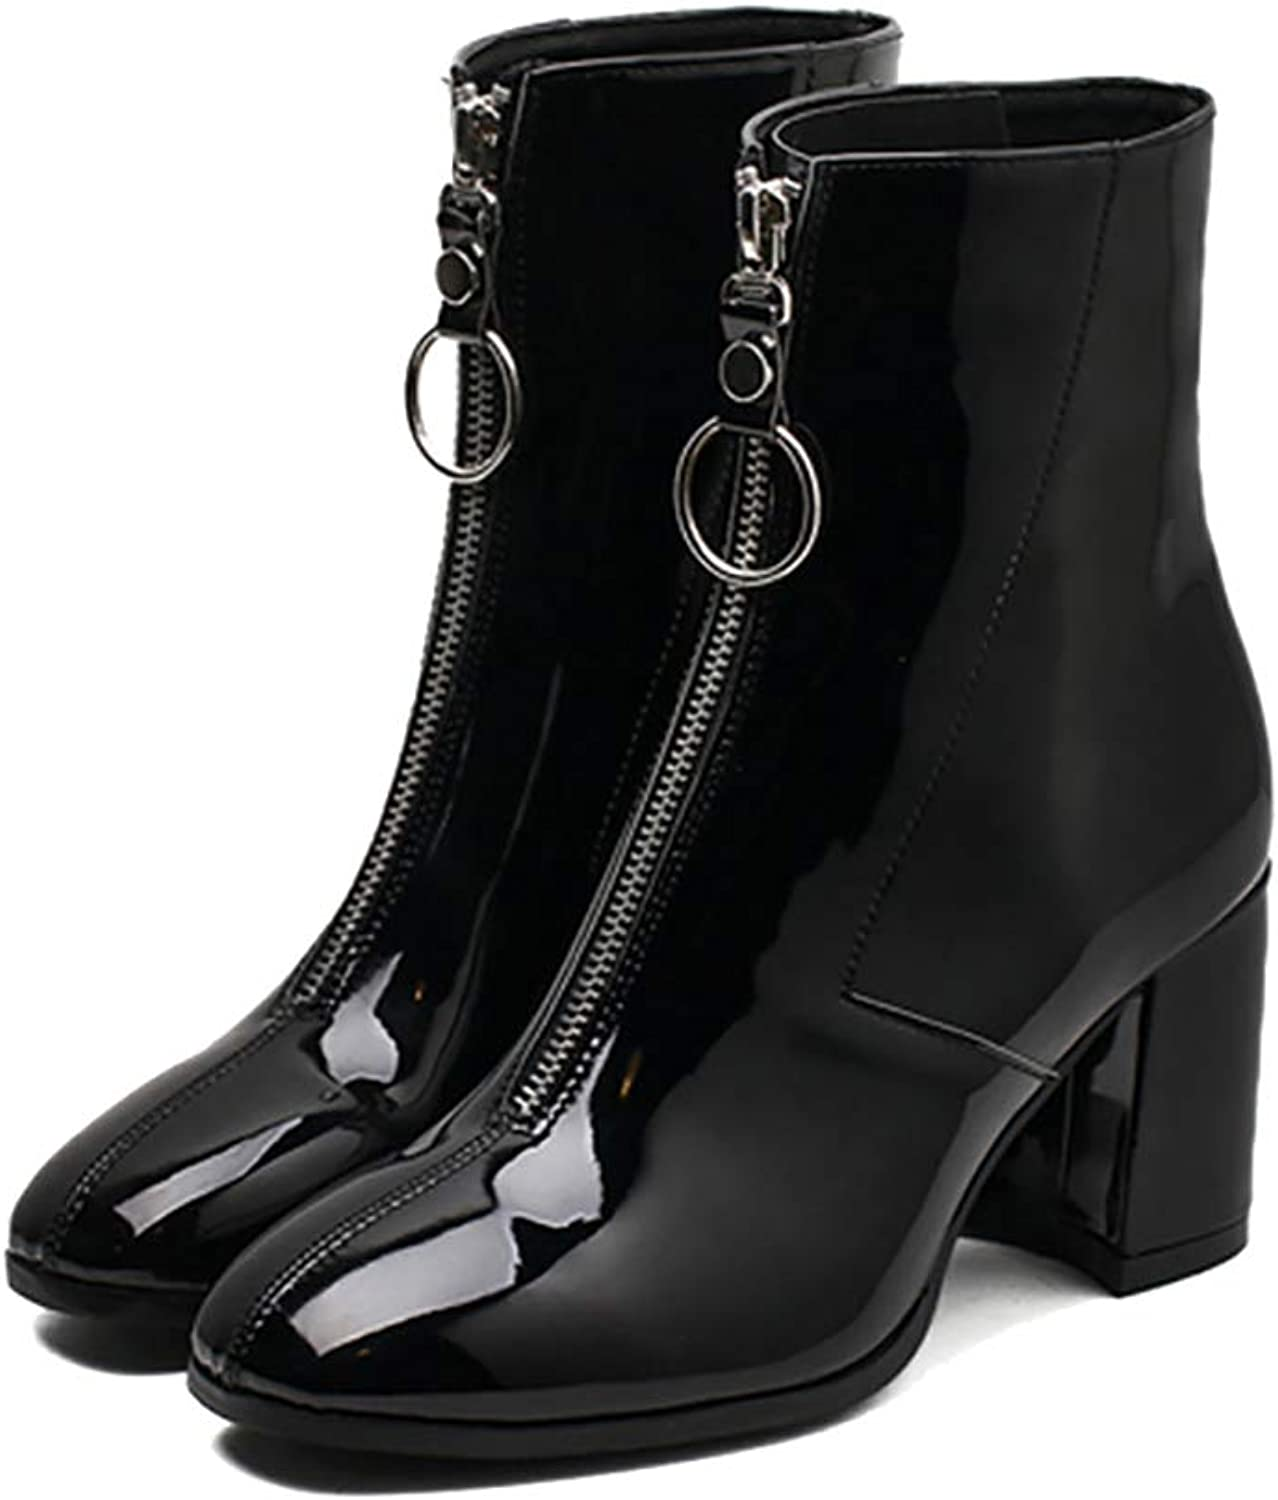 MONMOIRA Front Zipper Punk Motorcycle Women Vintage Square Toe High Heel Women Boots Warm Winter Women shoes SWE0315